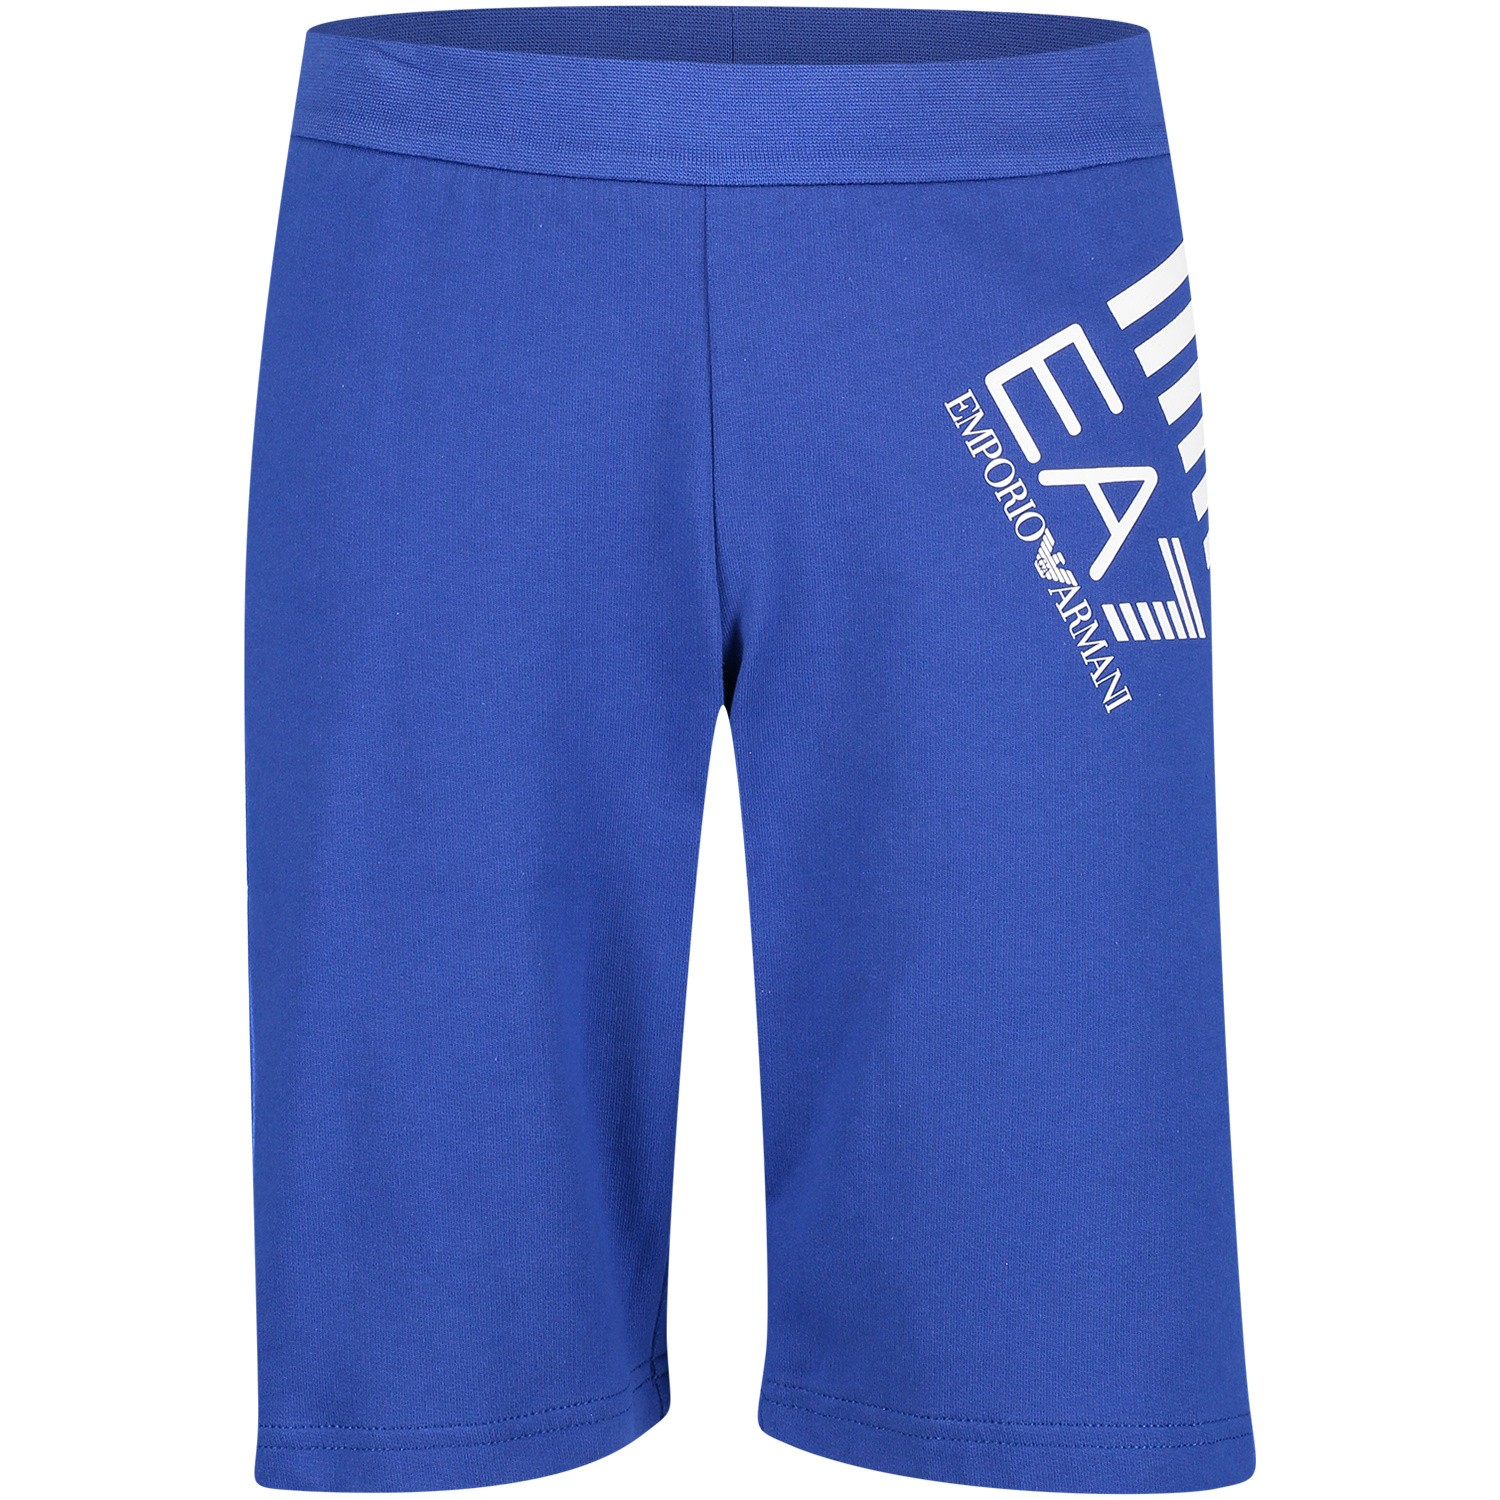 Picture of EA7 3GBS57 kids shorts cobalt blue